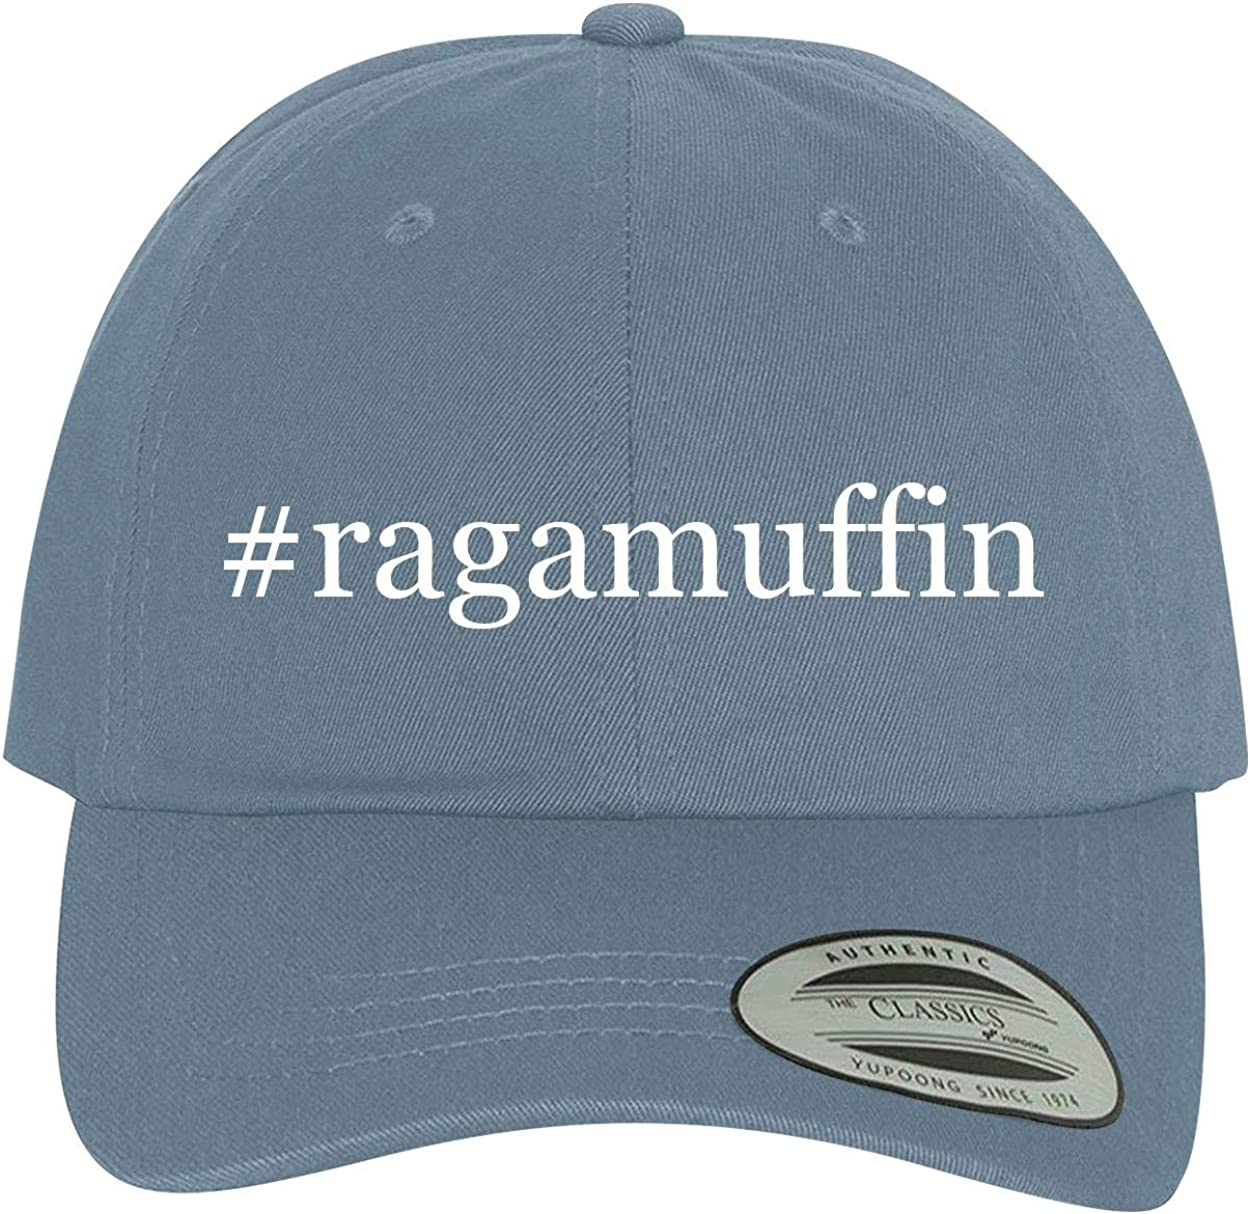 Comfortable Dad Hat Baseball Cap BH Cool Designs #Ragamuffin